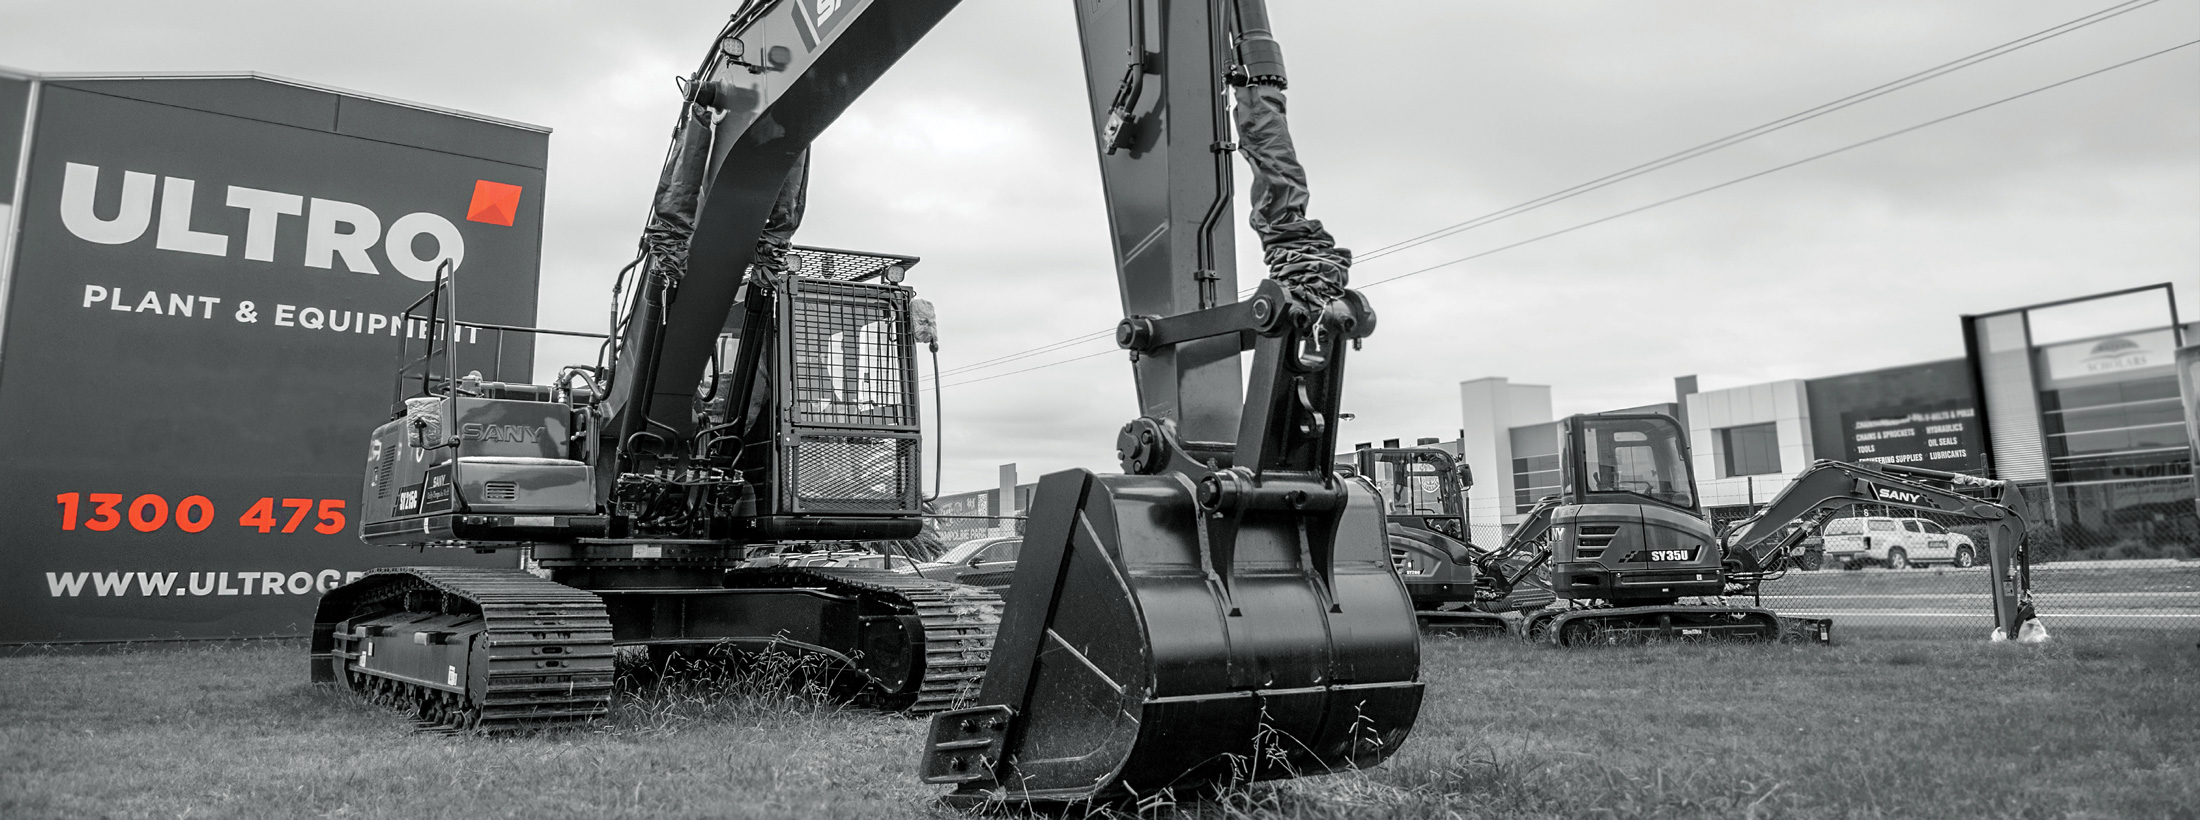 Ultro-Plant-and-Equipment---Construction-machinery